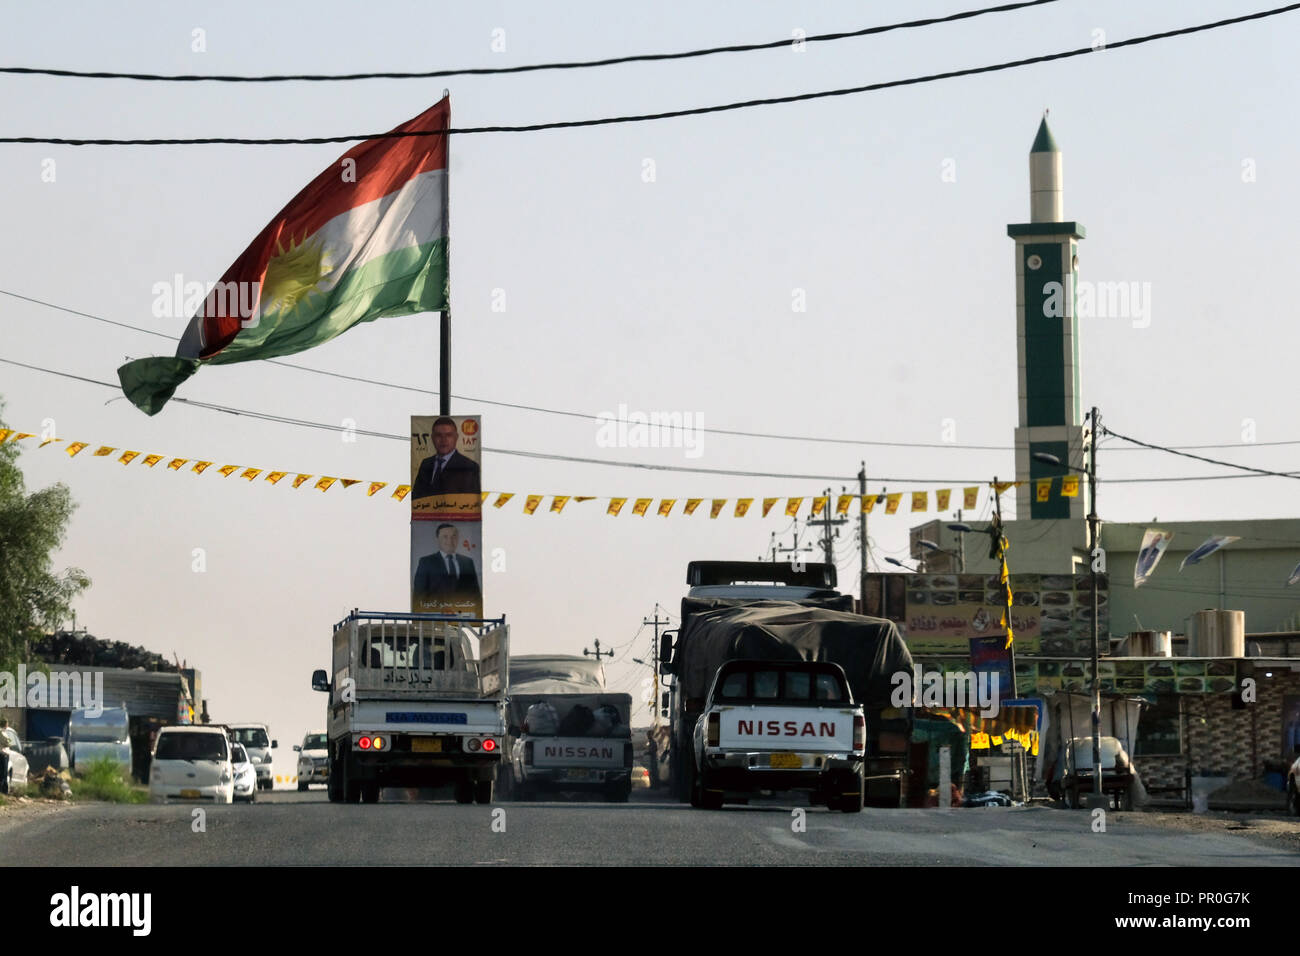 Kurdistan flag, mosque, street scene in the Nineve plain, Northern Iraq, Kurdistan - Stock Image